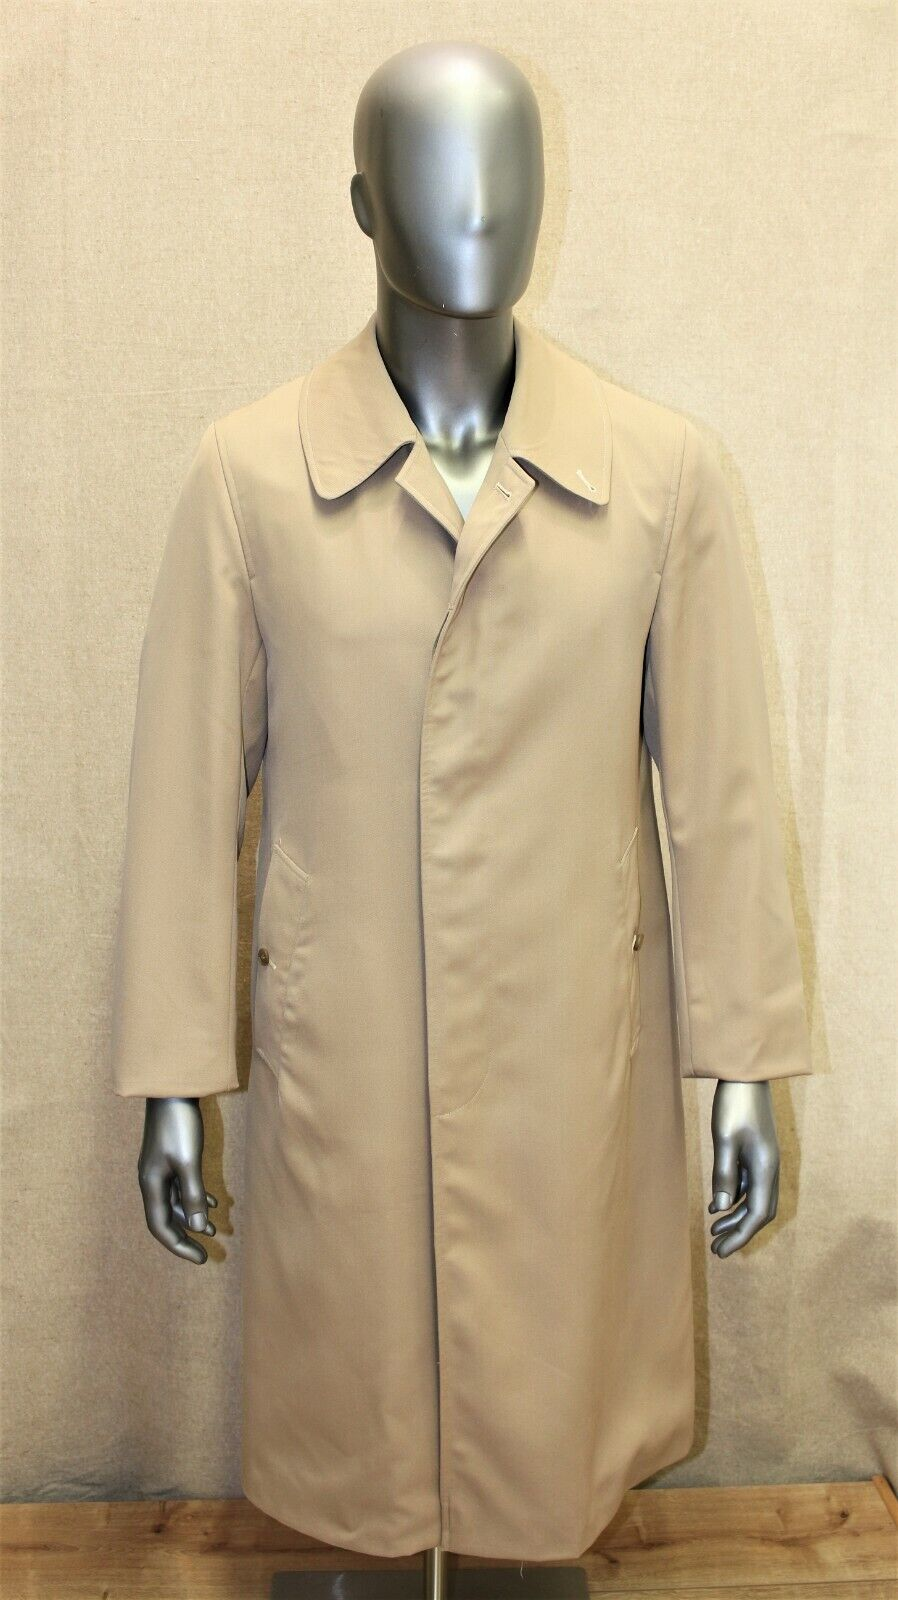 Trench imperméable burberry's vintage 70's raglan 46 long beige made in england